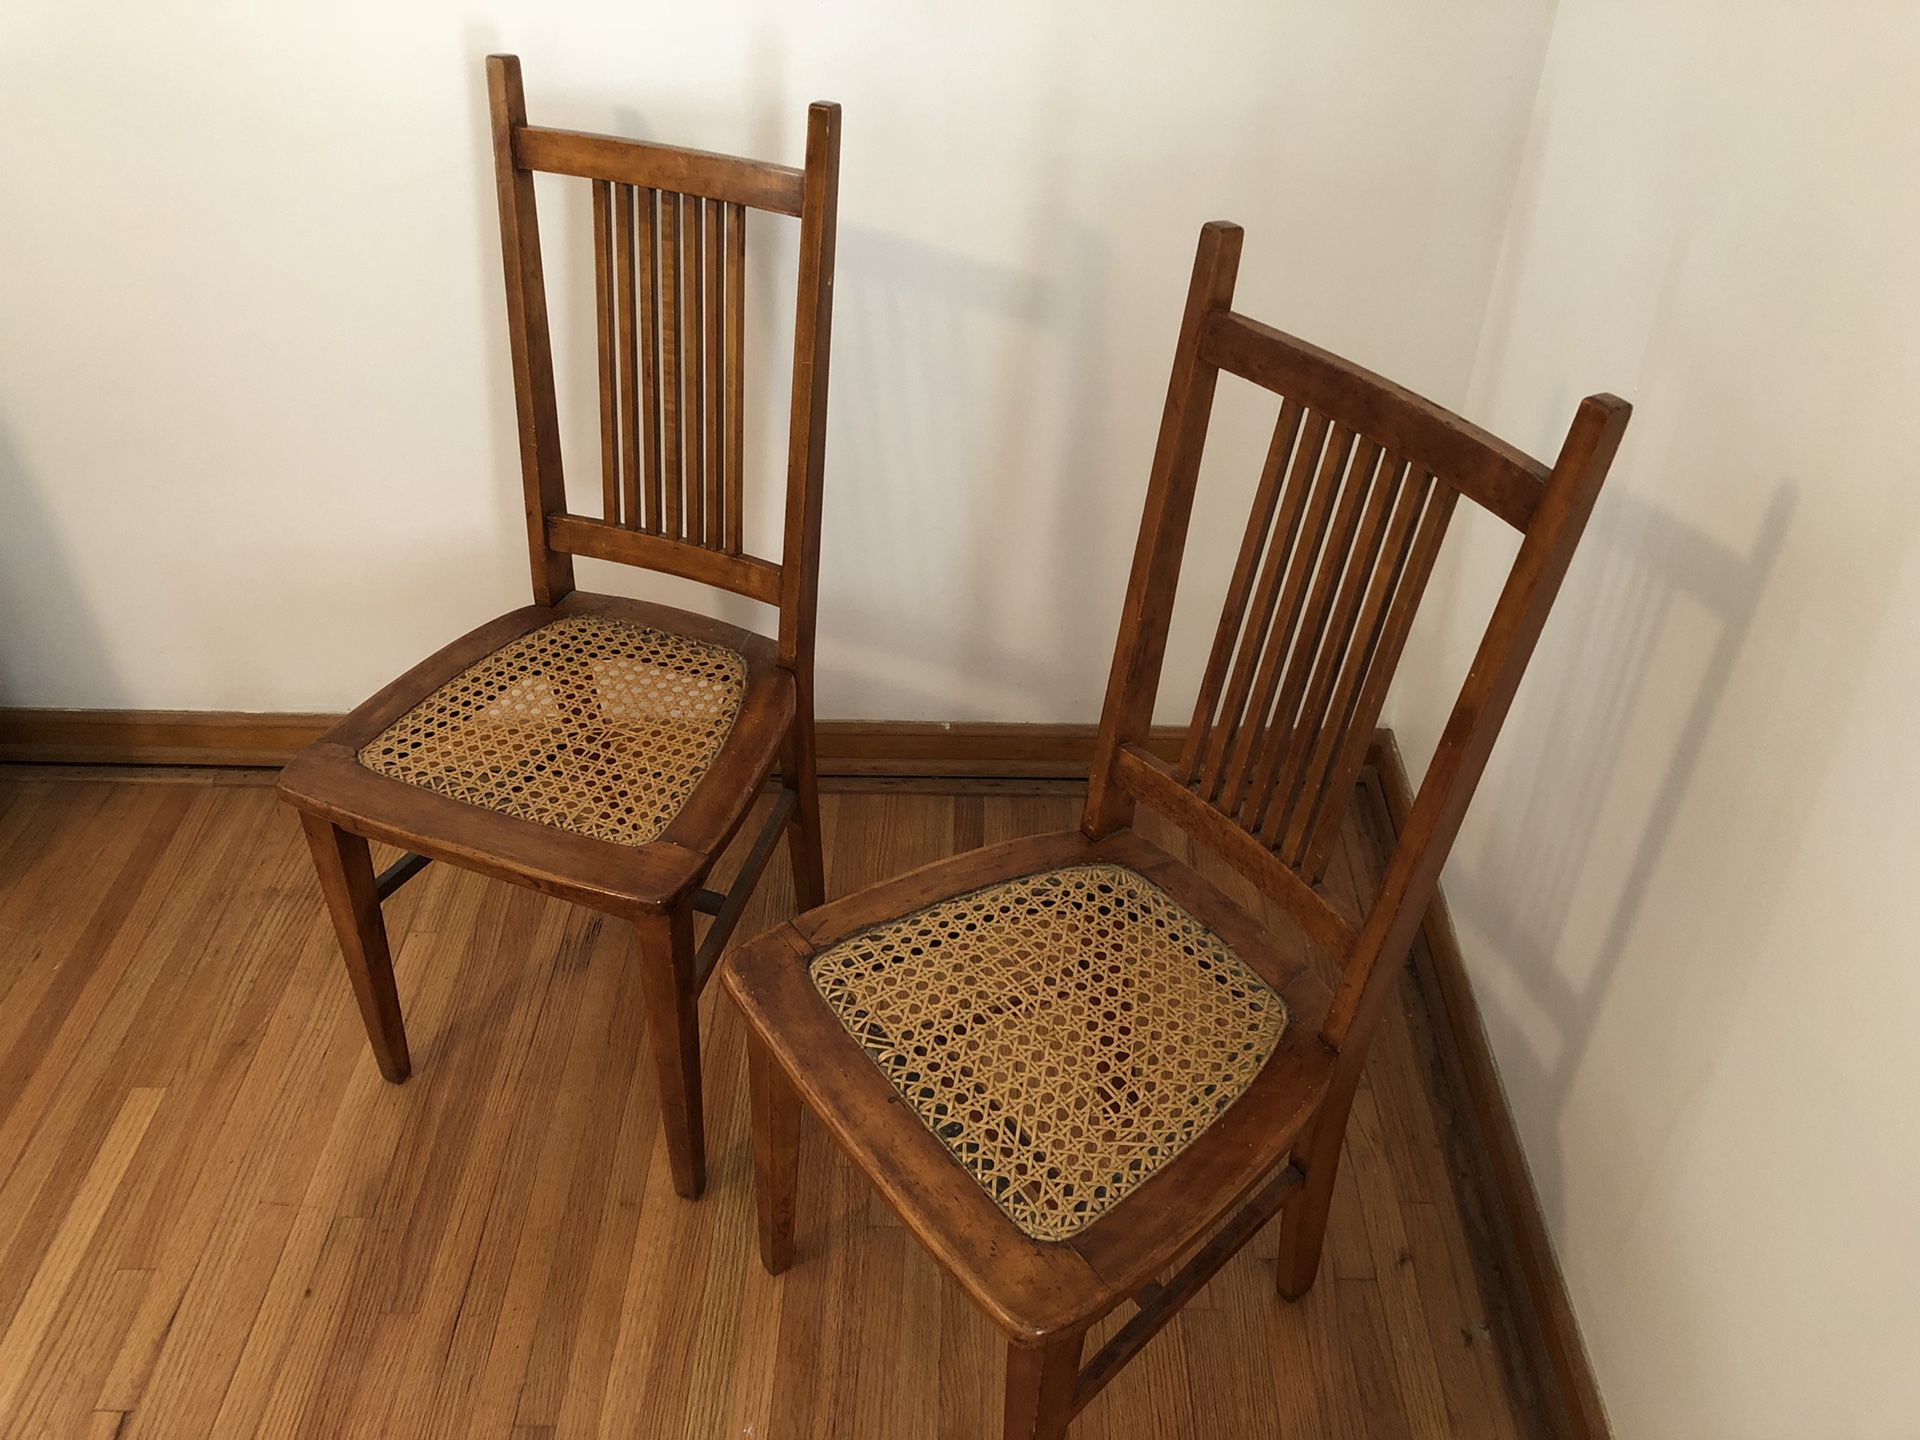 Vintage Chairs (QTY = 2)